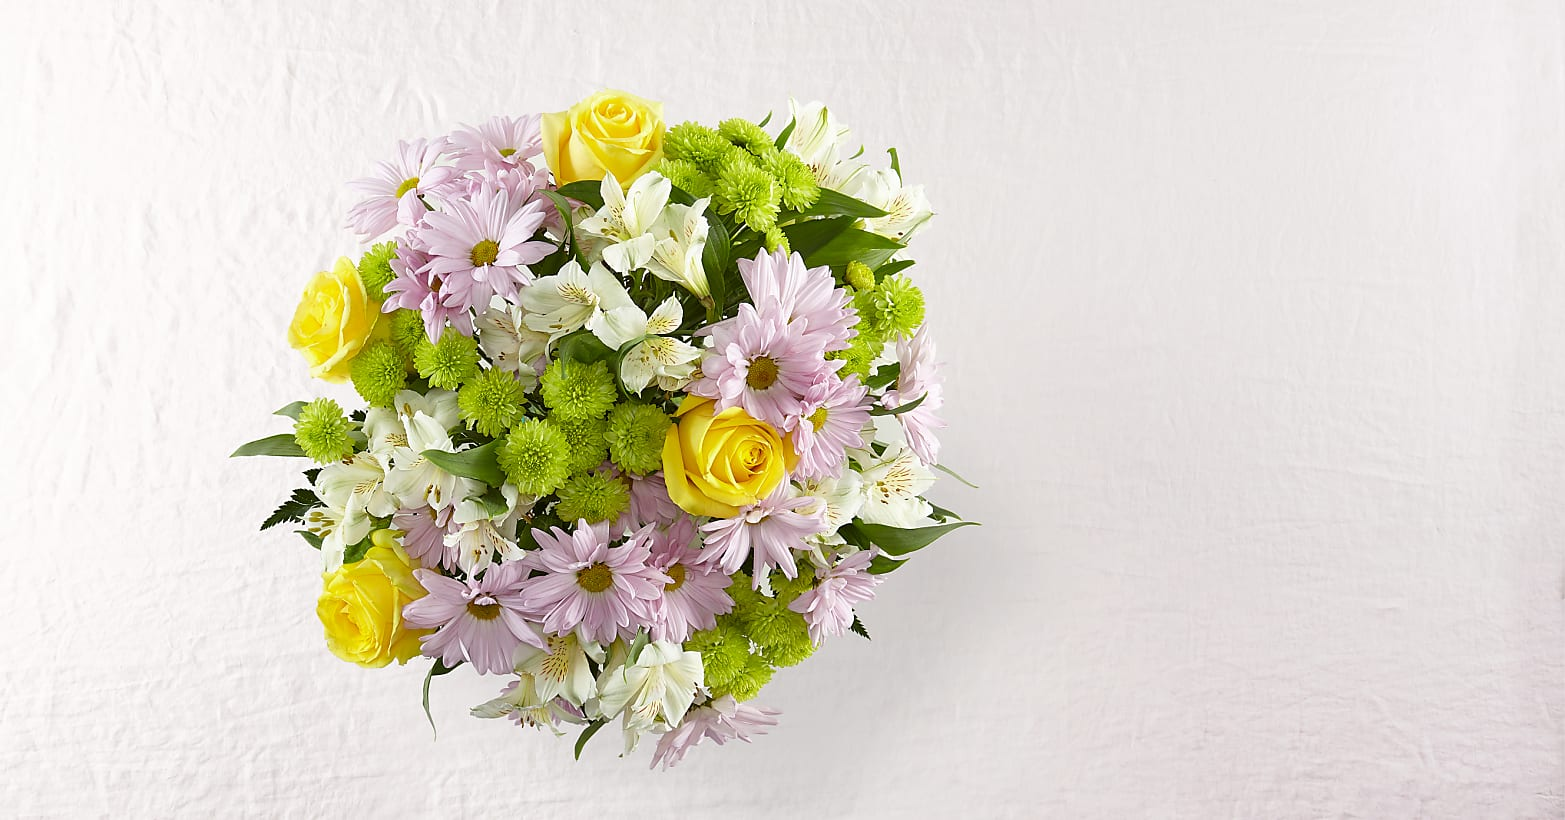 Sweet Delight Bouquet - Image 2 Of 2